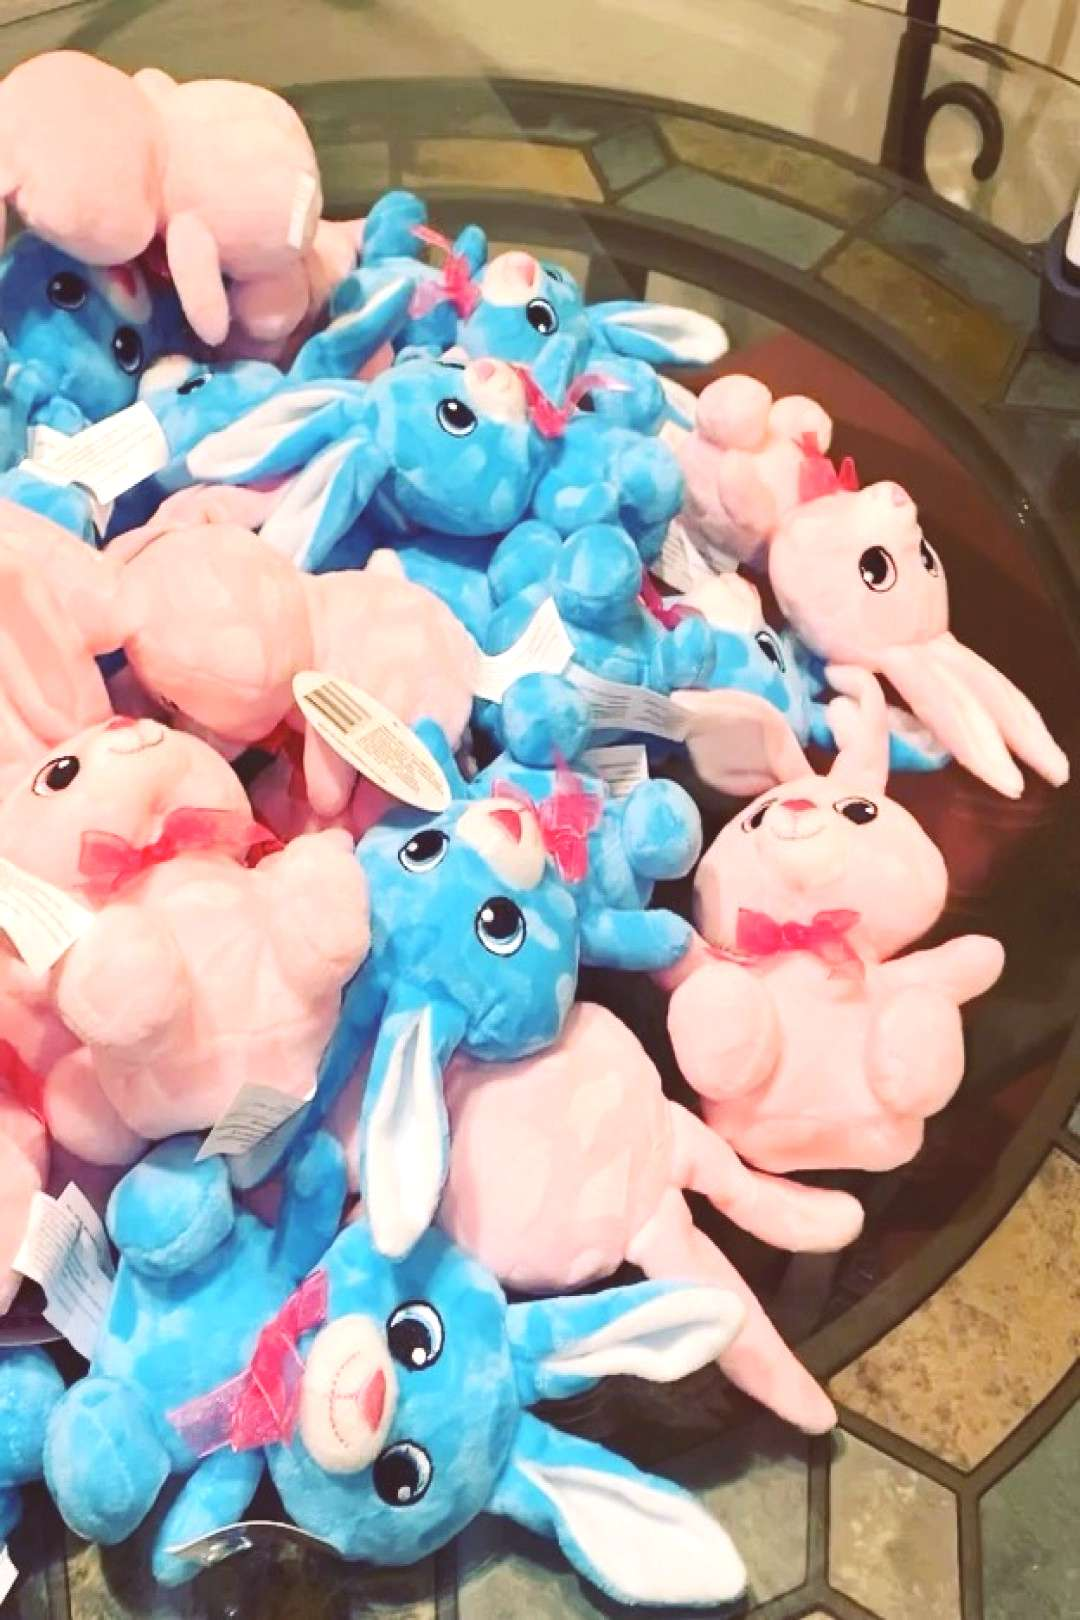 Its time to customize some more bunnies for Easter. This weekend